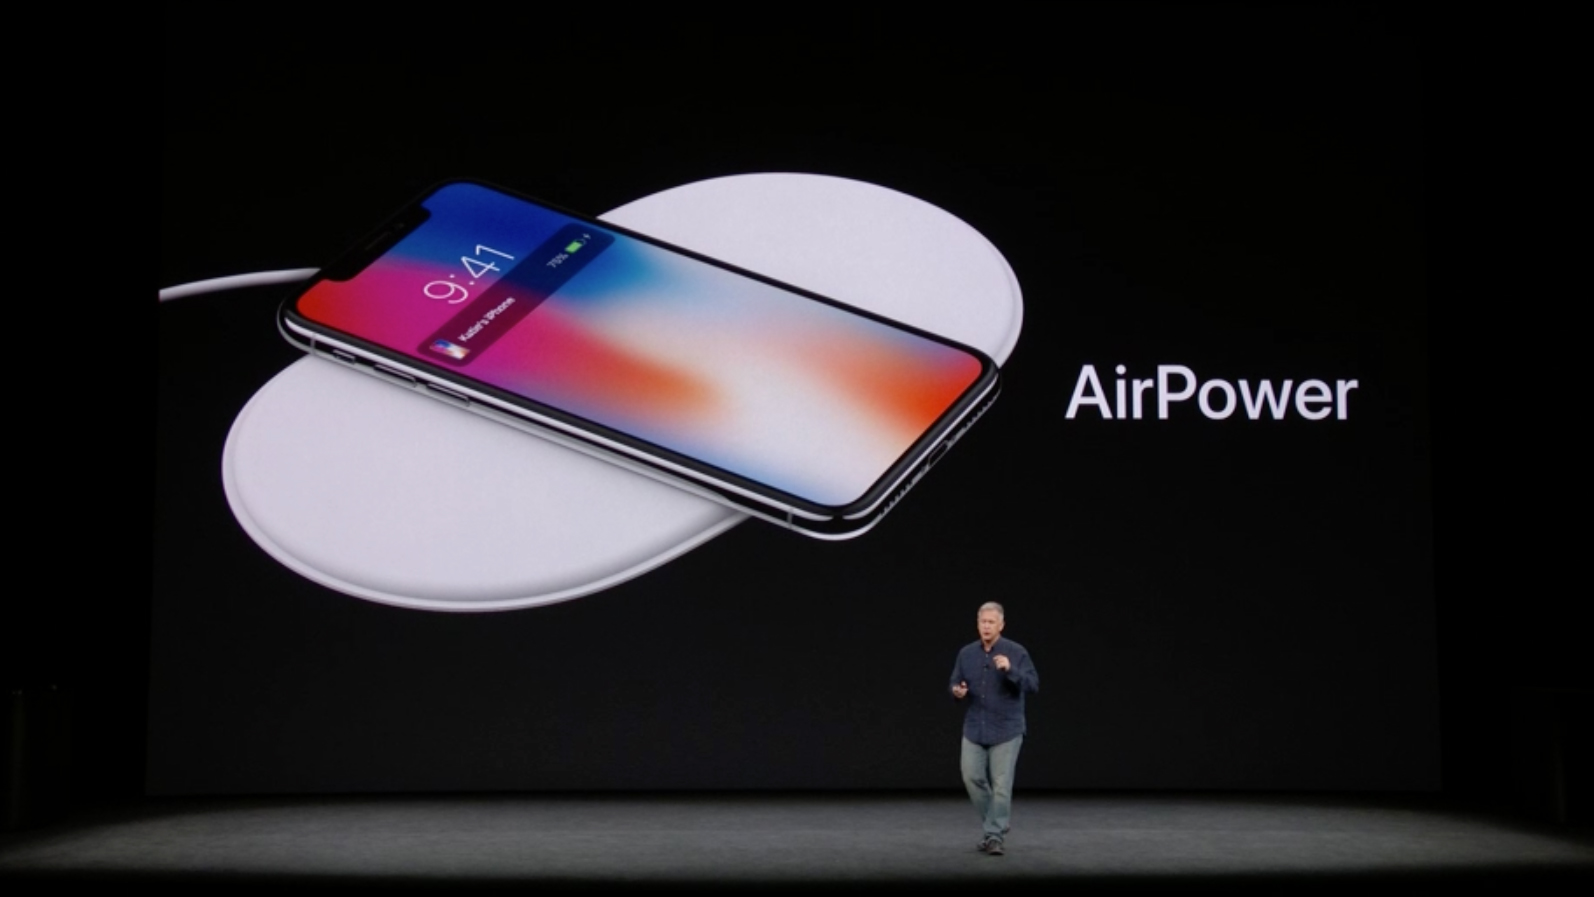 Apple airpower 2020